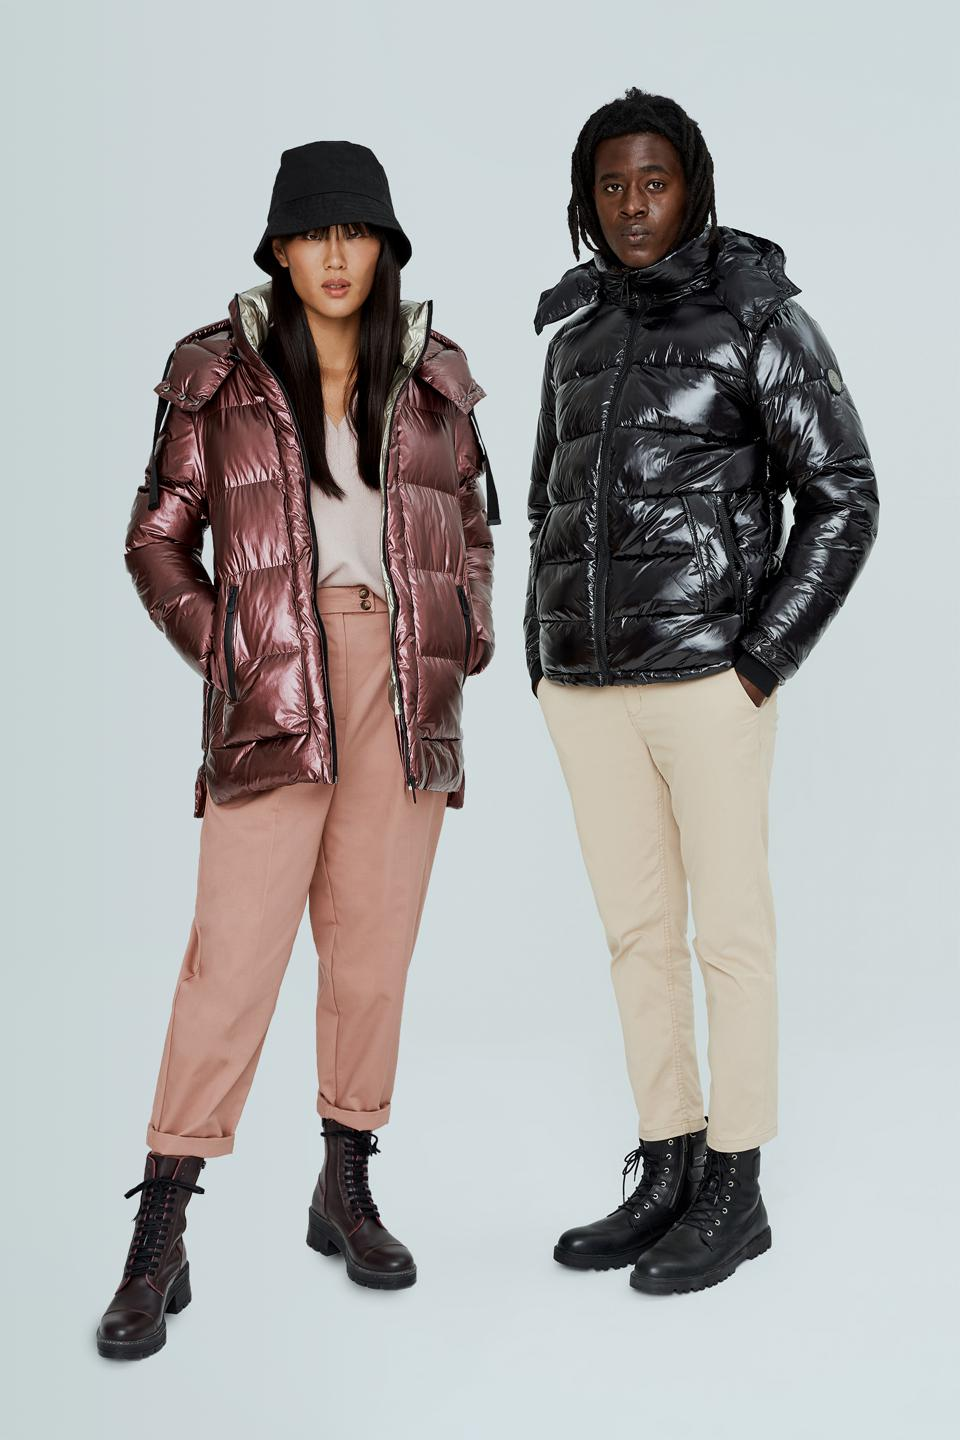 man and woman in shiny puffer jackets